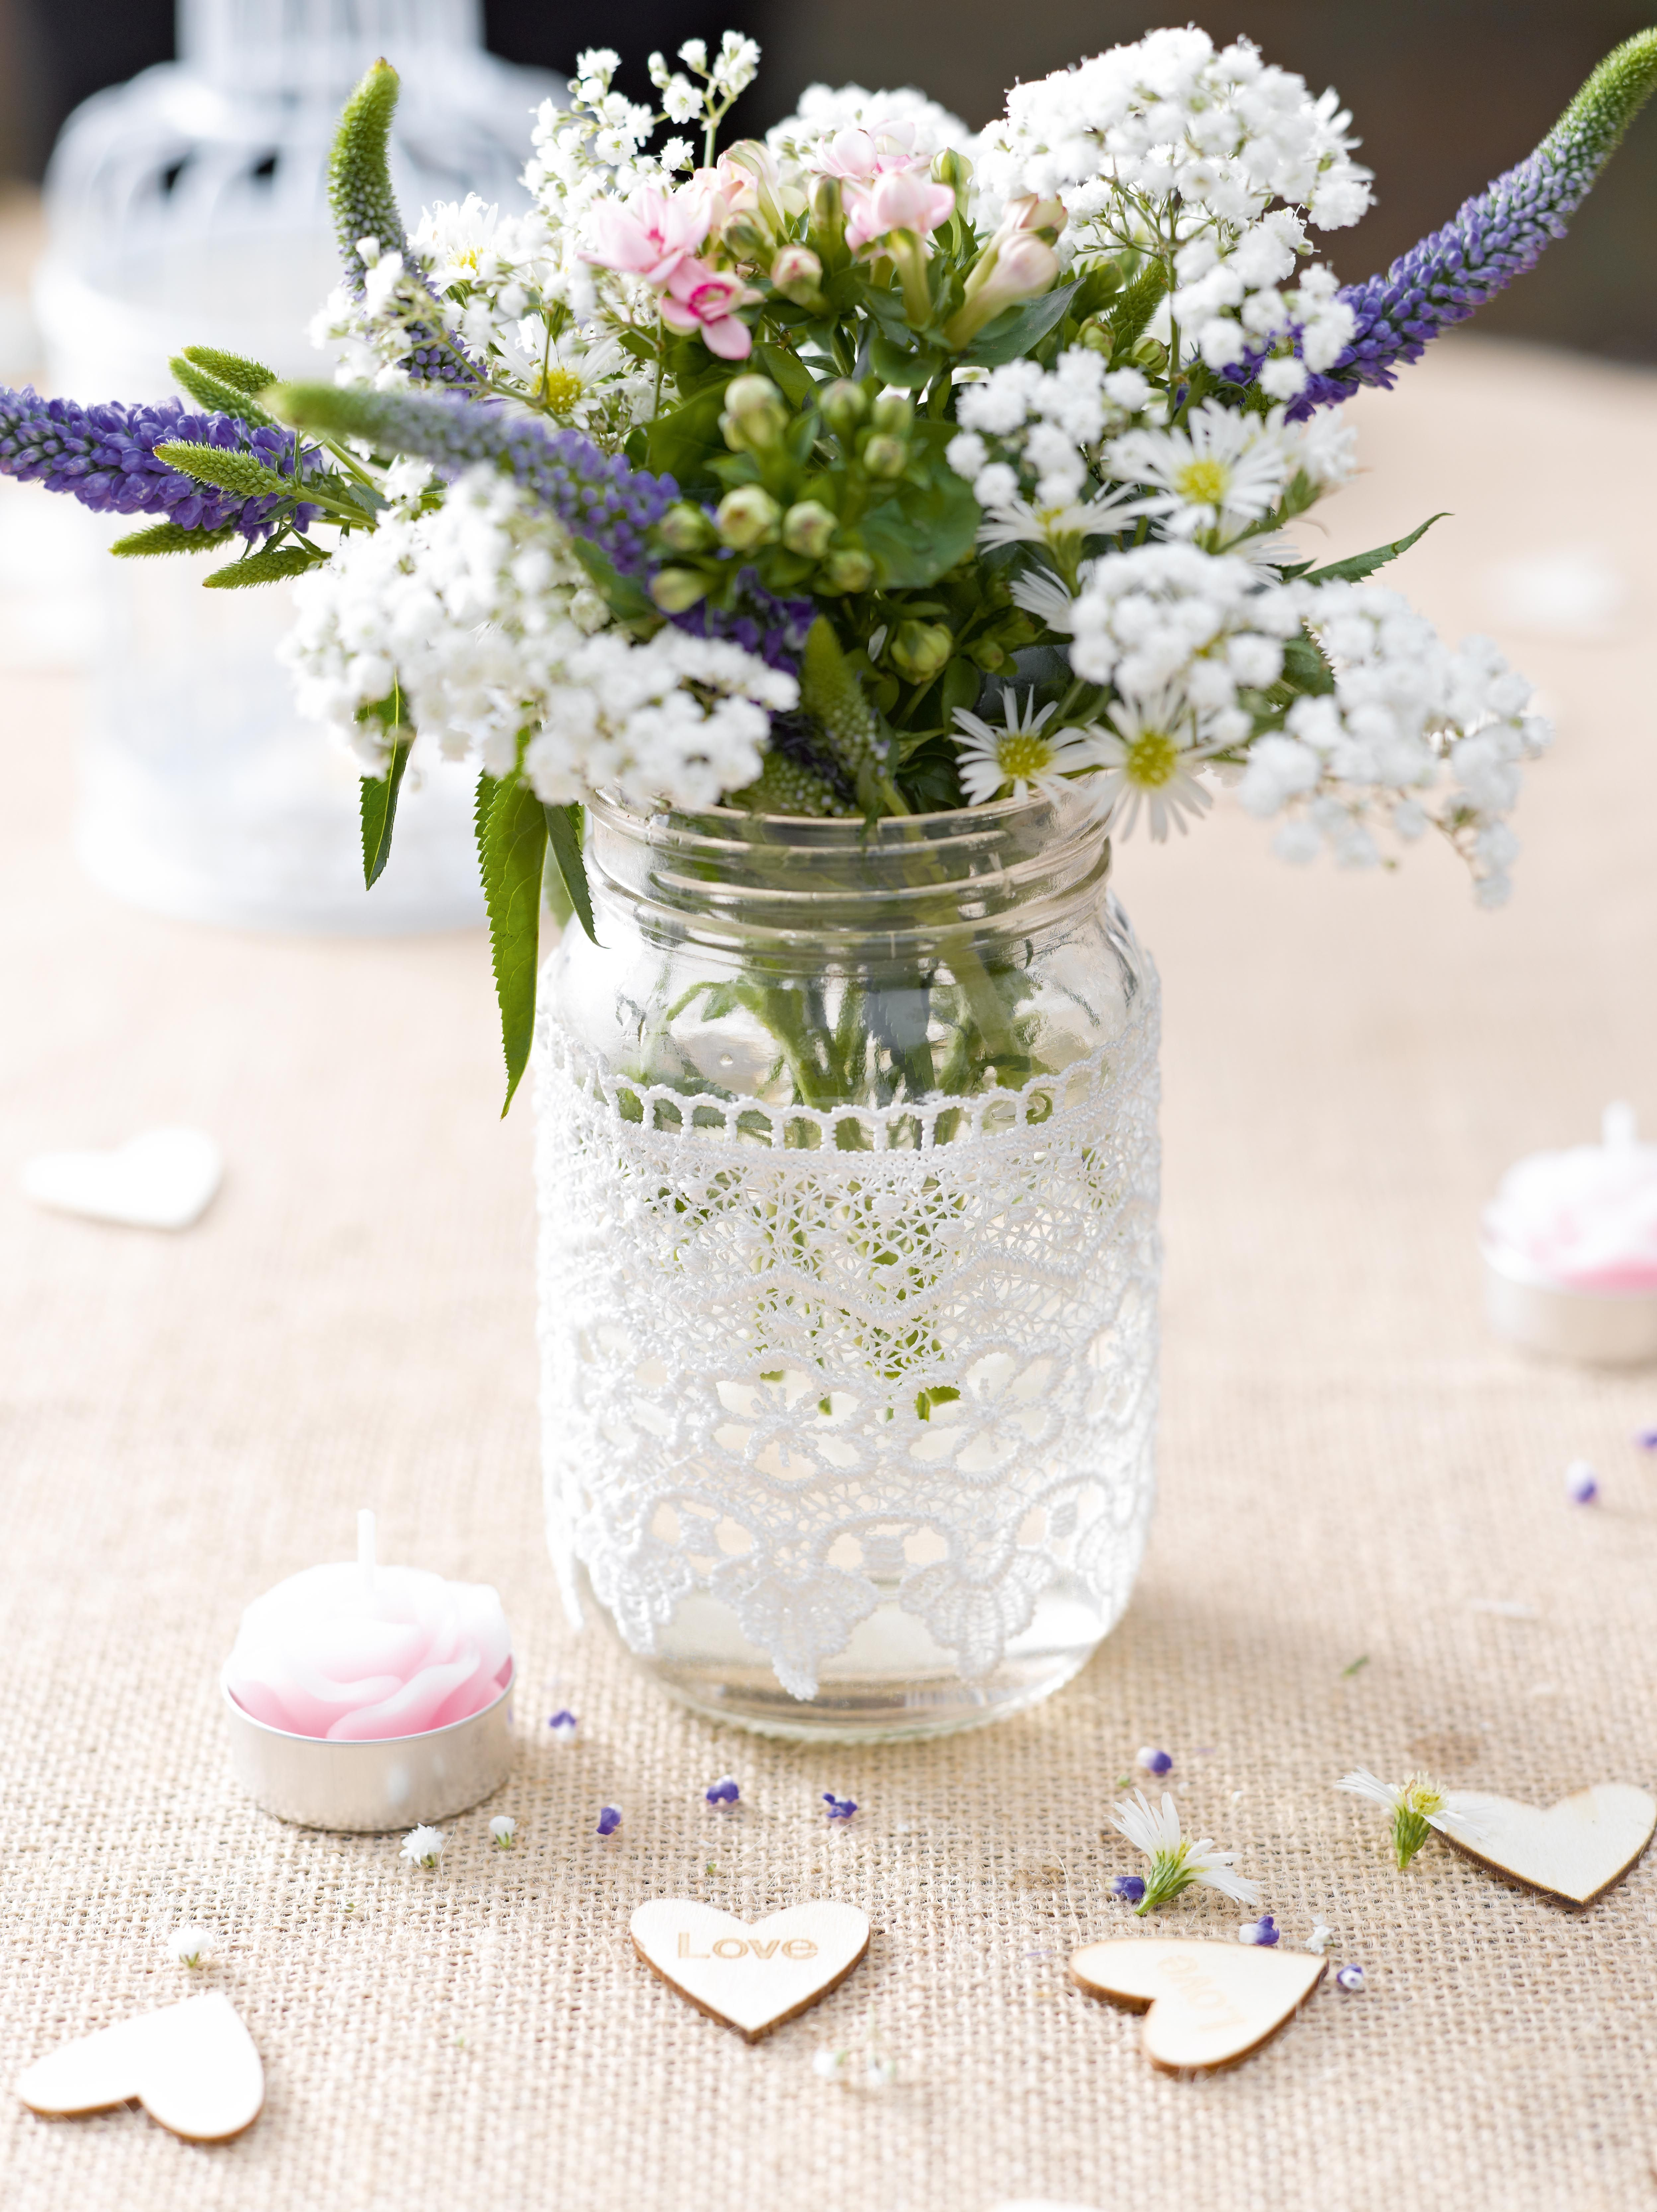 Cute Table Decorations For Wedding Or Valentines Httpwww